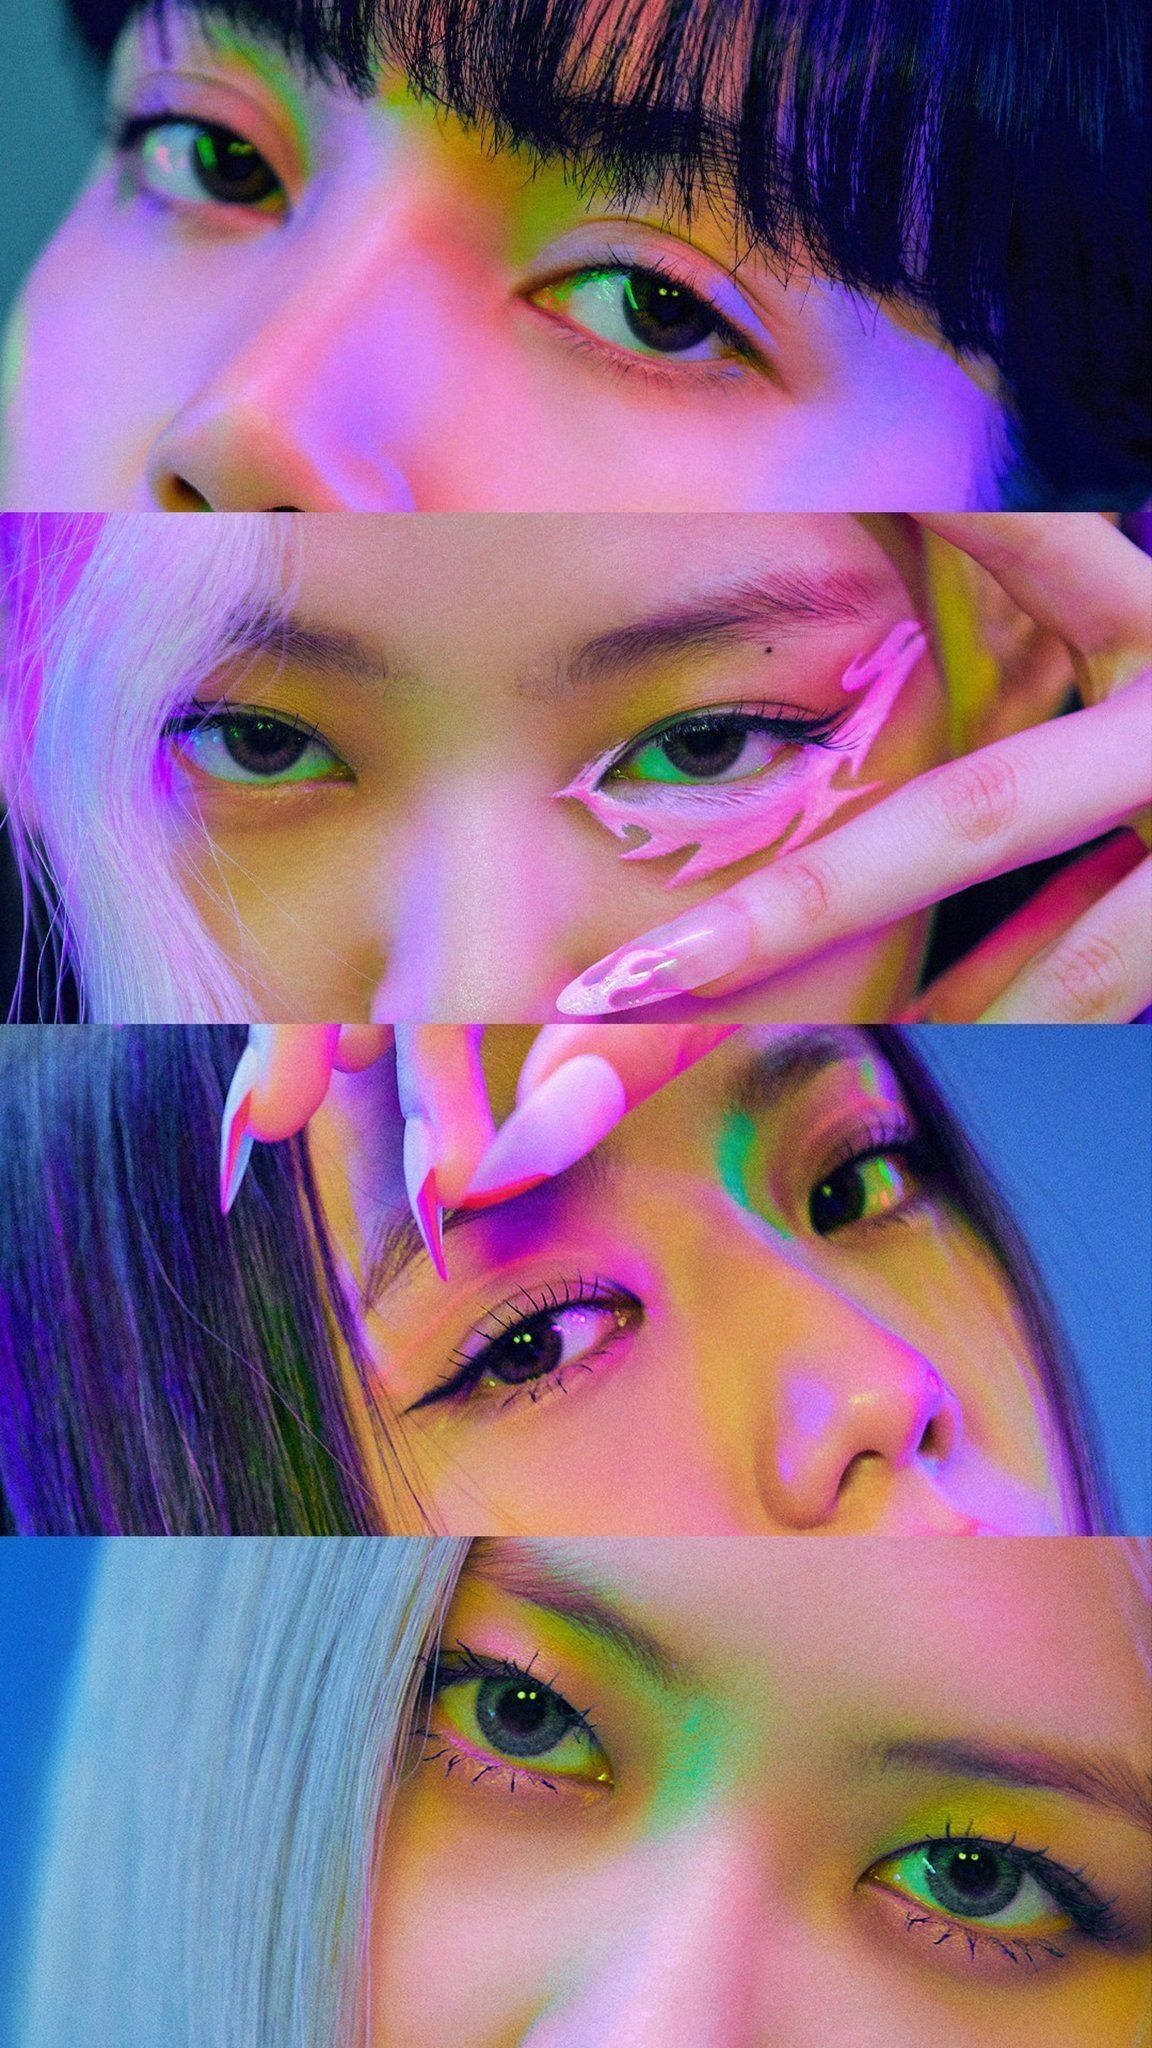 blackpink discover pin on wallpapers blackpink how you